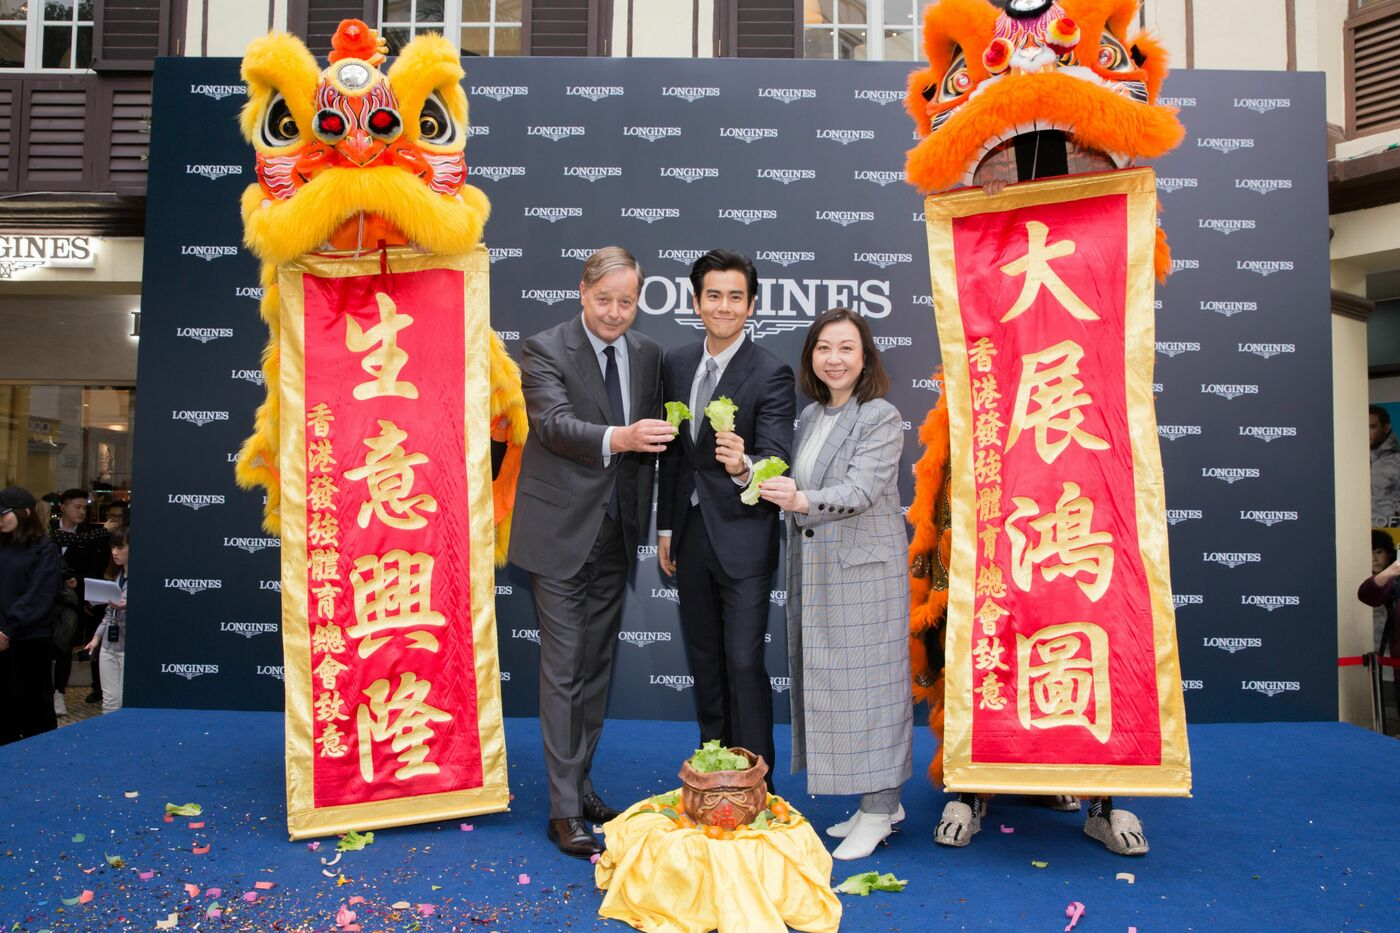 Longines Corporate Event: Grand opening of Longines Flagship Boutique and Super Heritage Corner in Macau S.A.R., China in presence of Eddie Peng 4